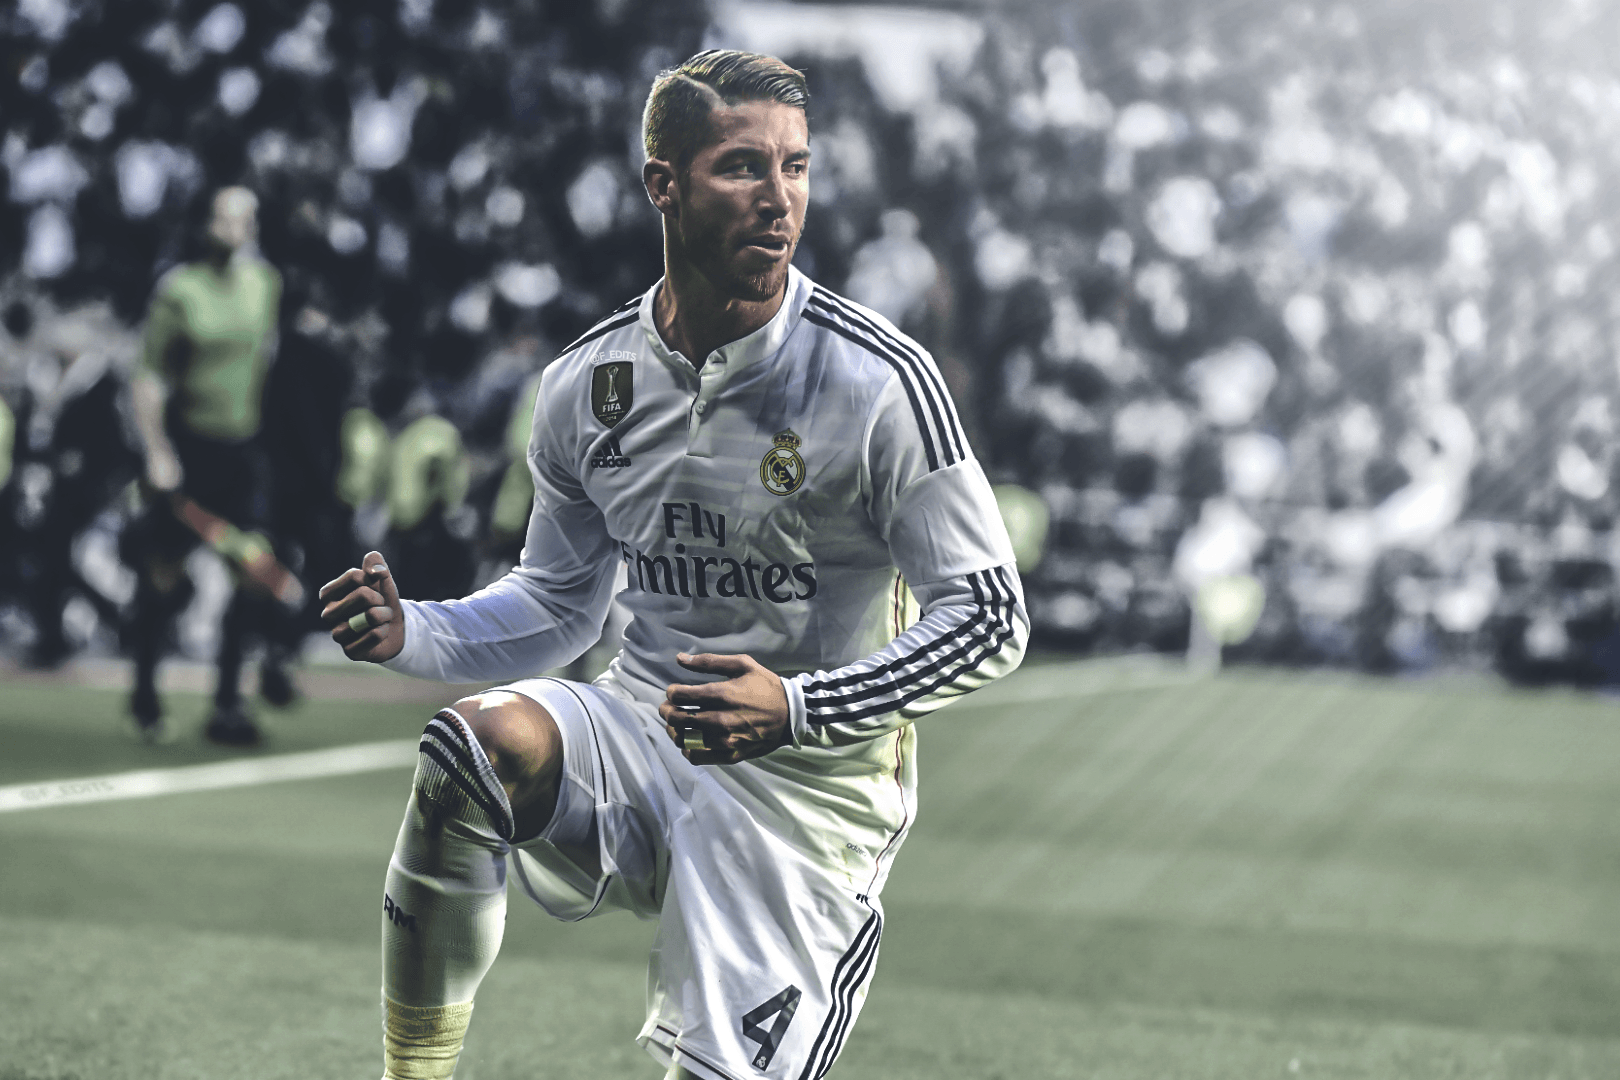 sergio ramos hd images - photo #5